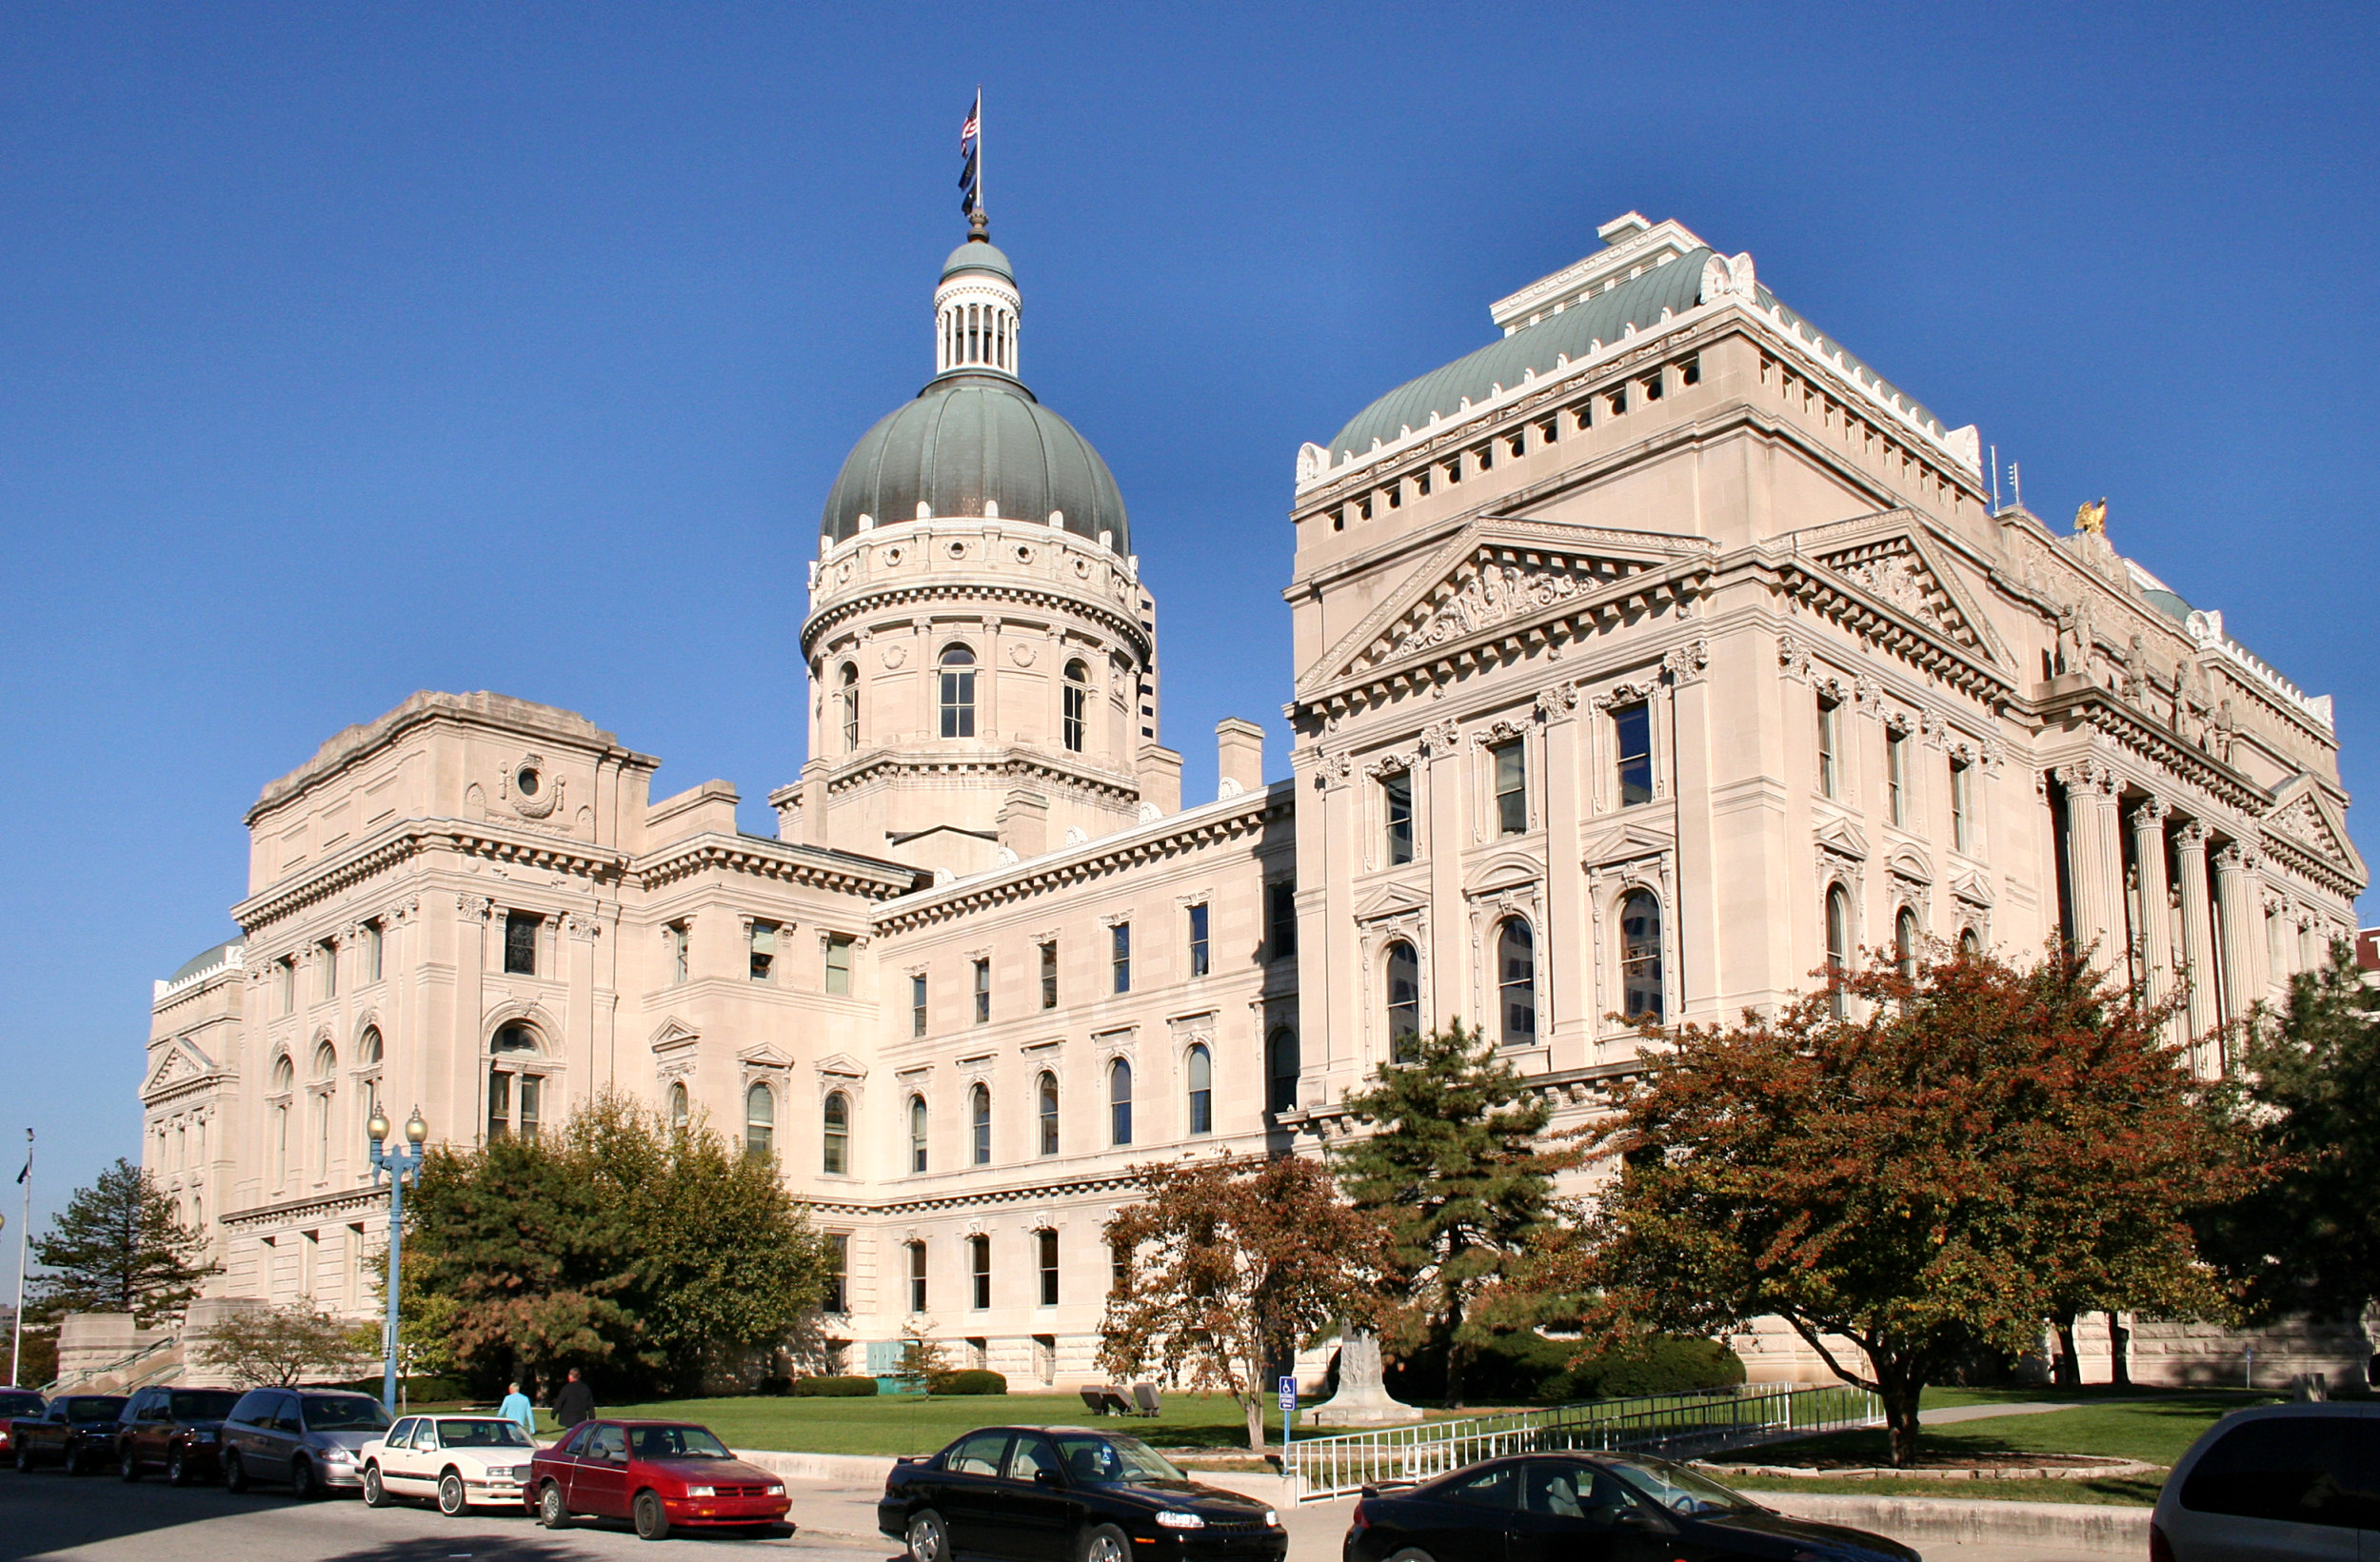 indianapolis_statehouse_courthouse_hd-wallpaper-169737.jpg